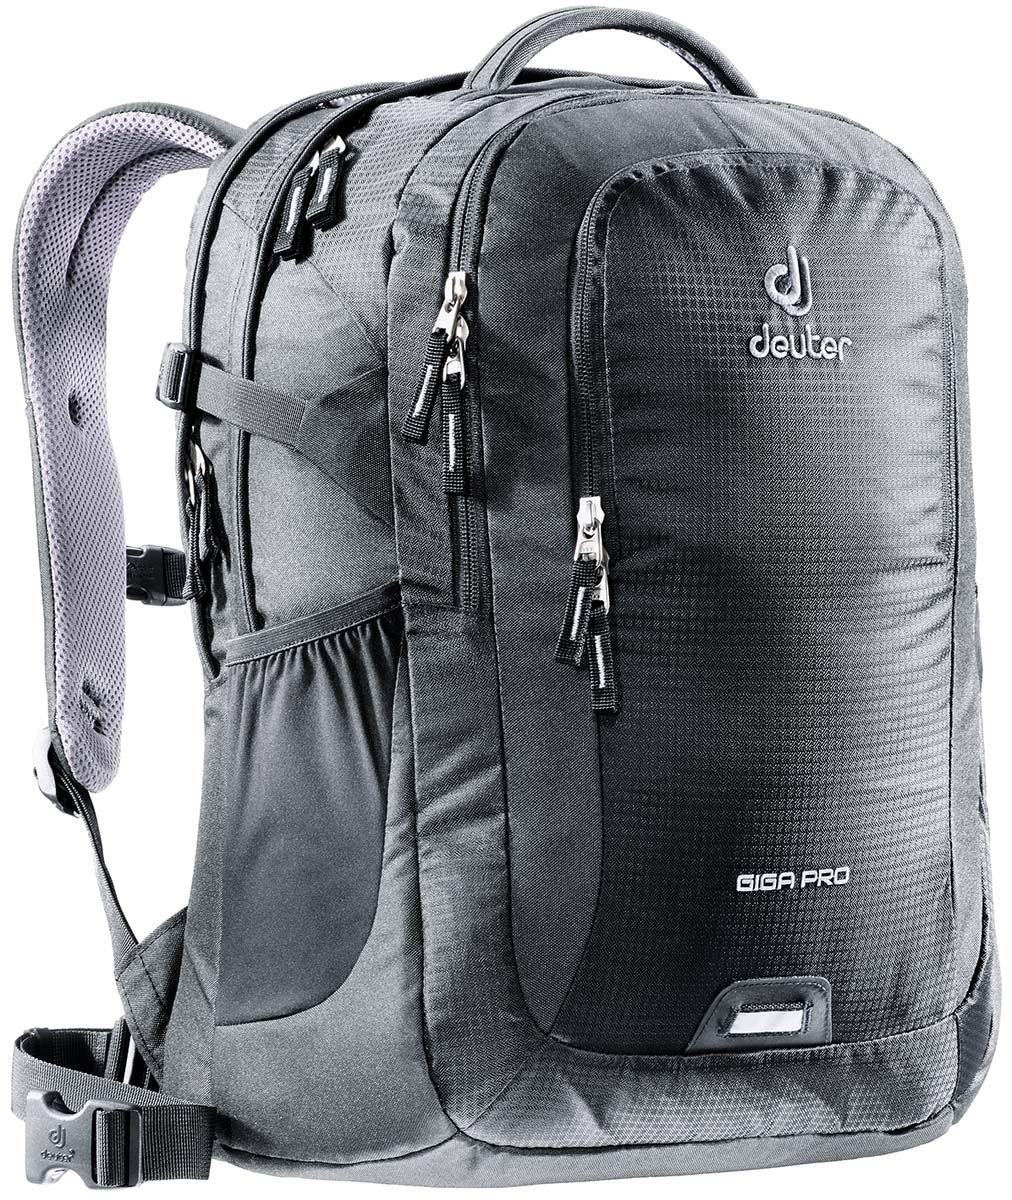 Рюкзак Deuter Daypacks Giga Pro, цвет: черный, 31 л deuter giga blackberry dresscode